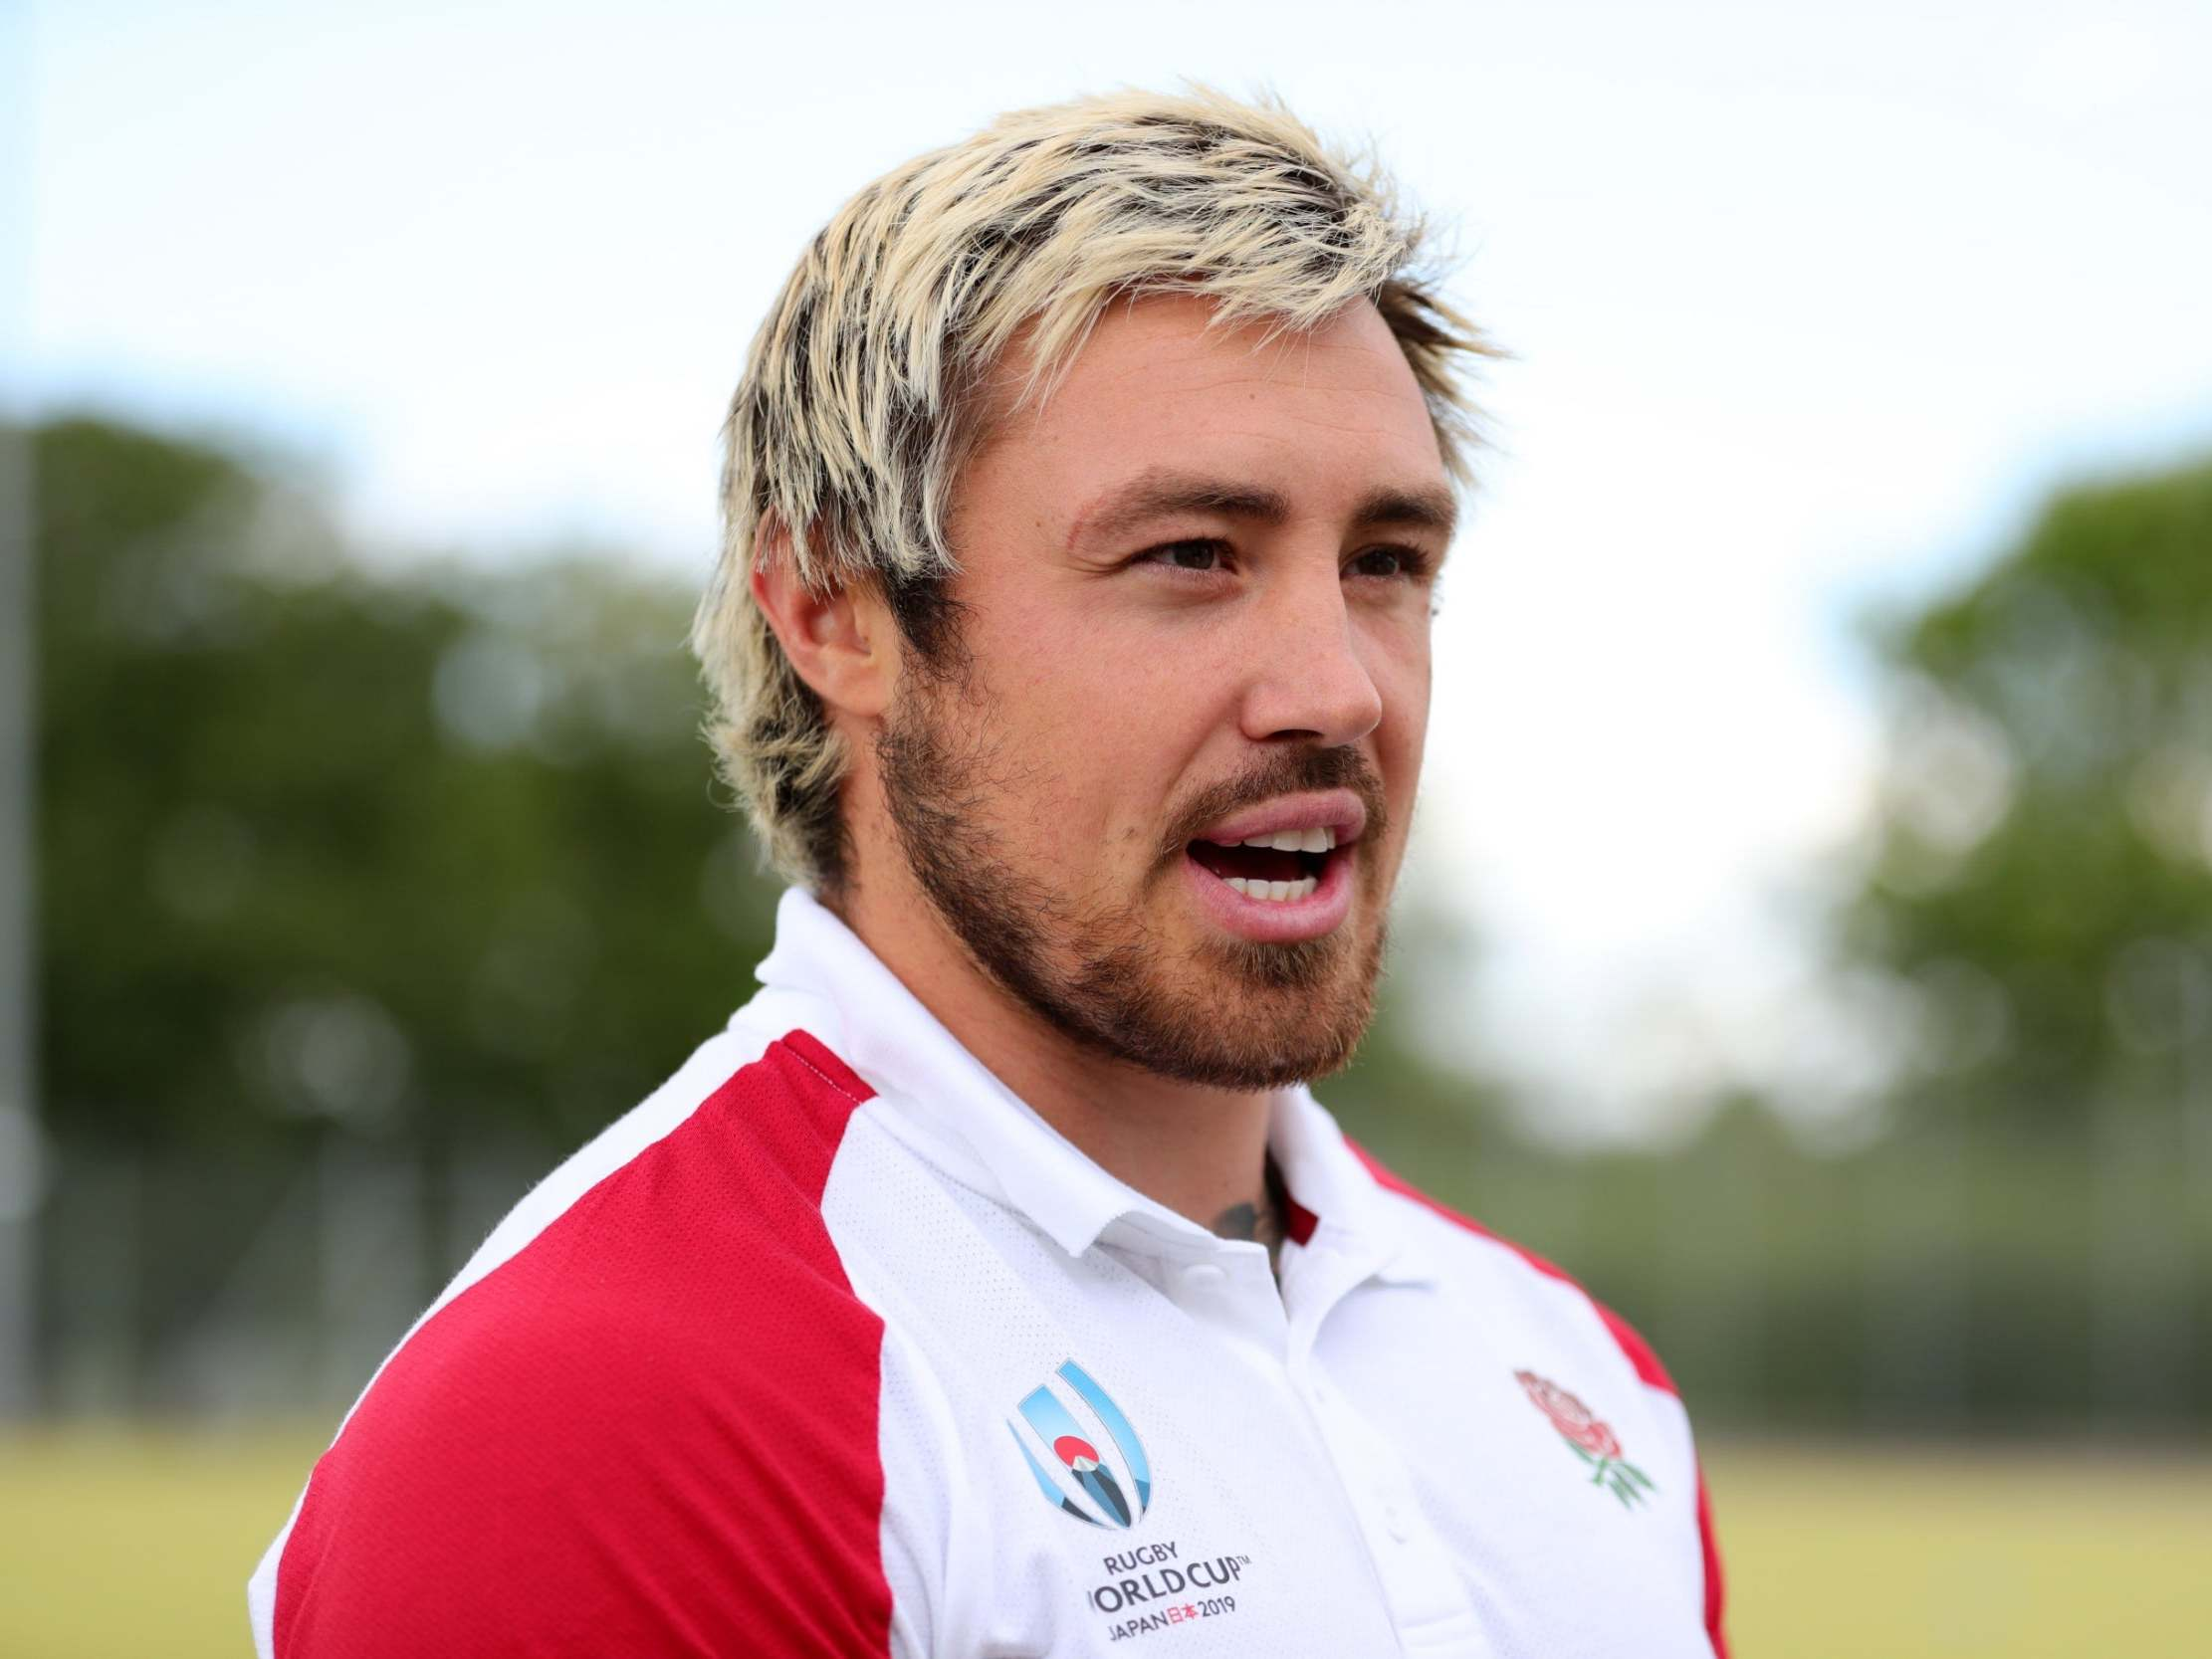 Rugby World Cup 2019: Jack Nowell has surgery to have appendix removed in setback to injury recovery